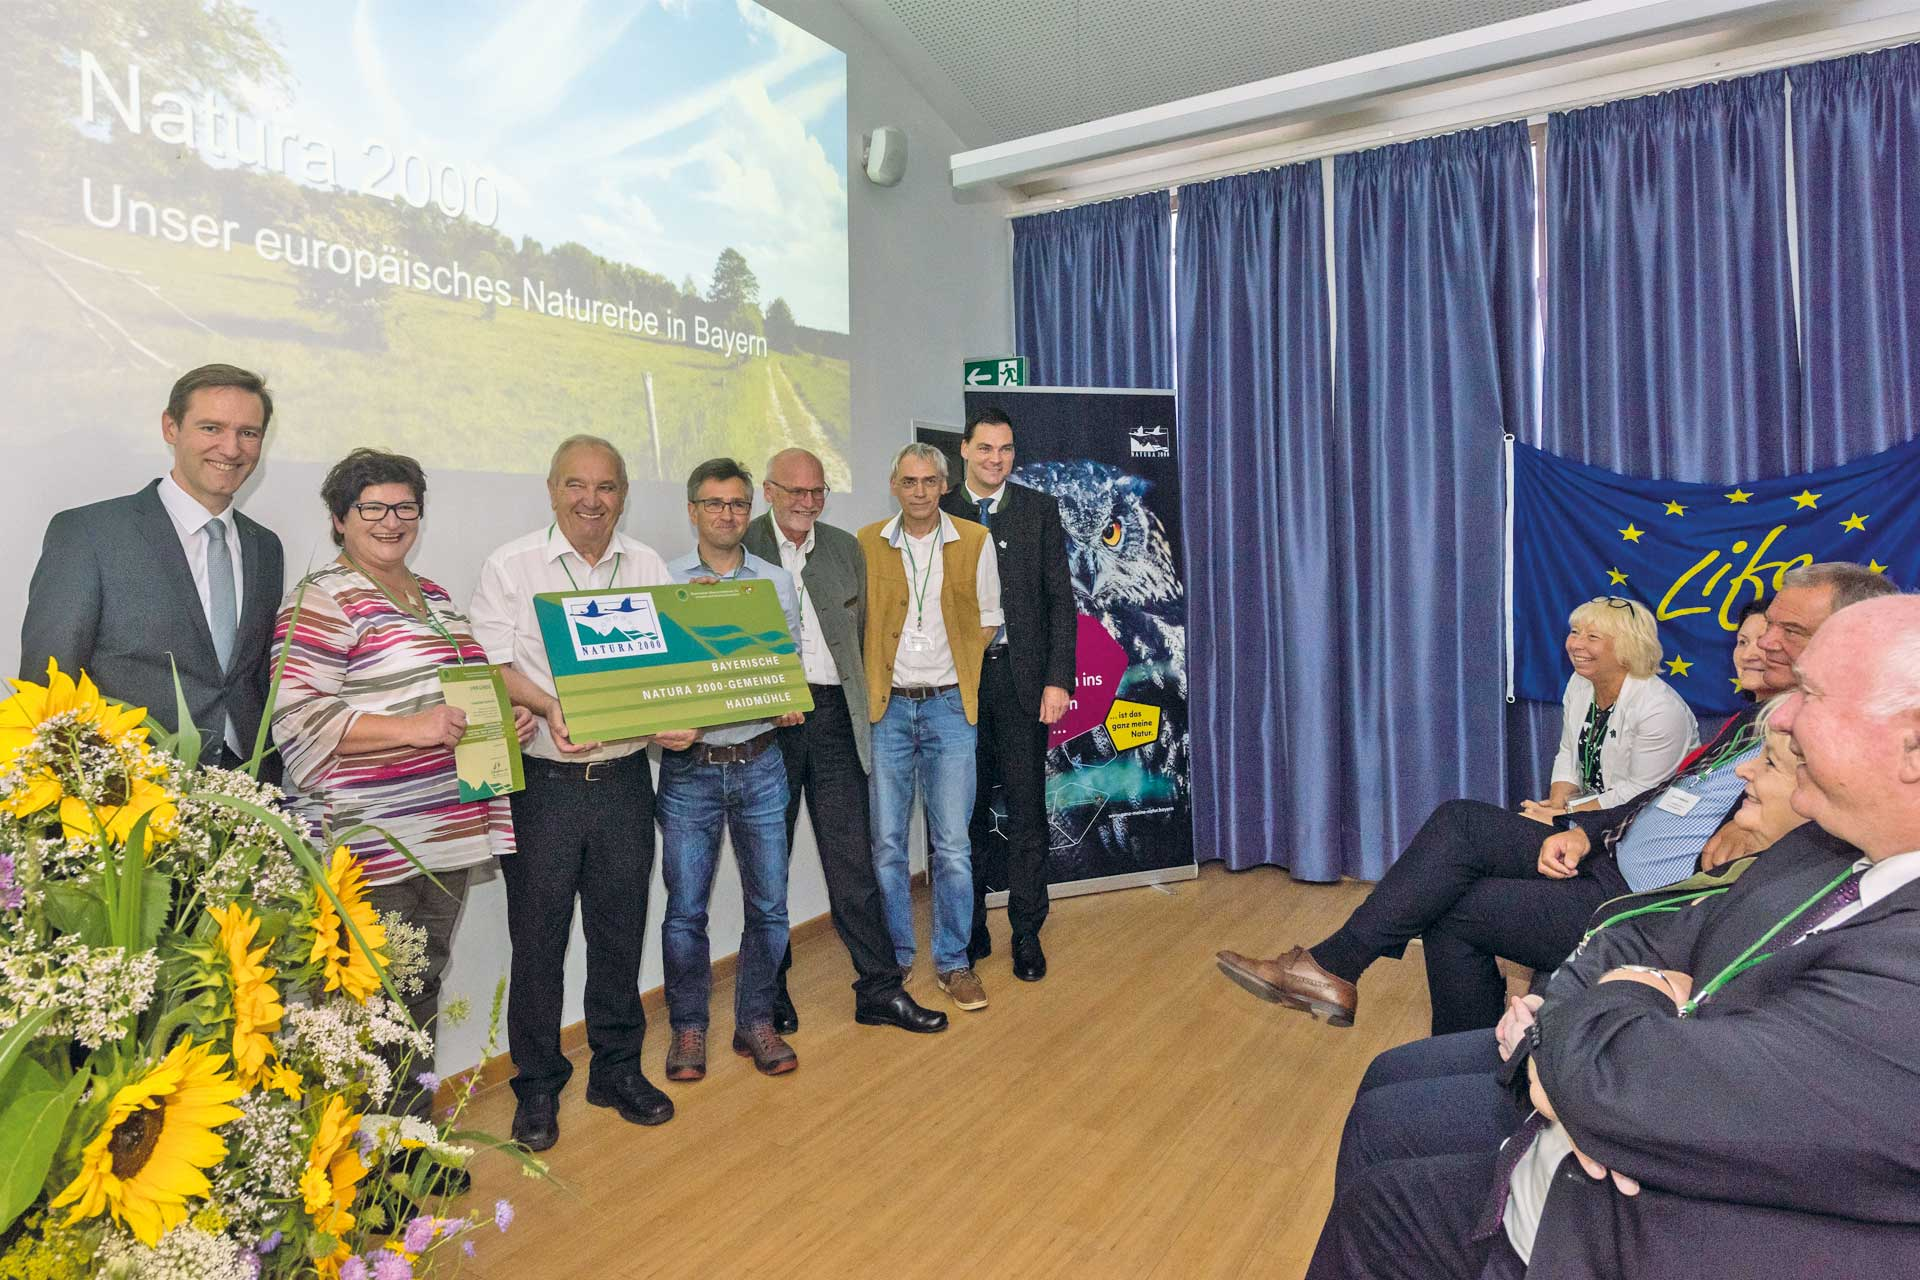 Presentation of the Award for the Natura 2000 town Handmühle.